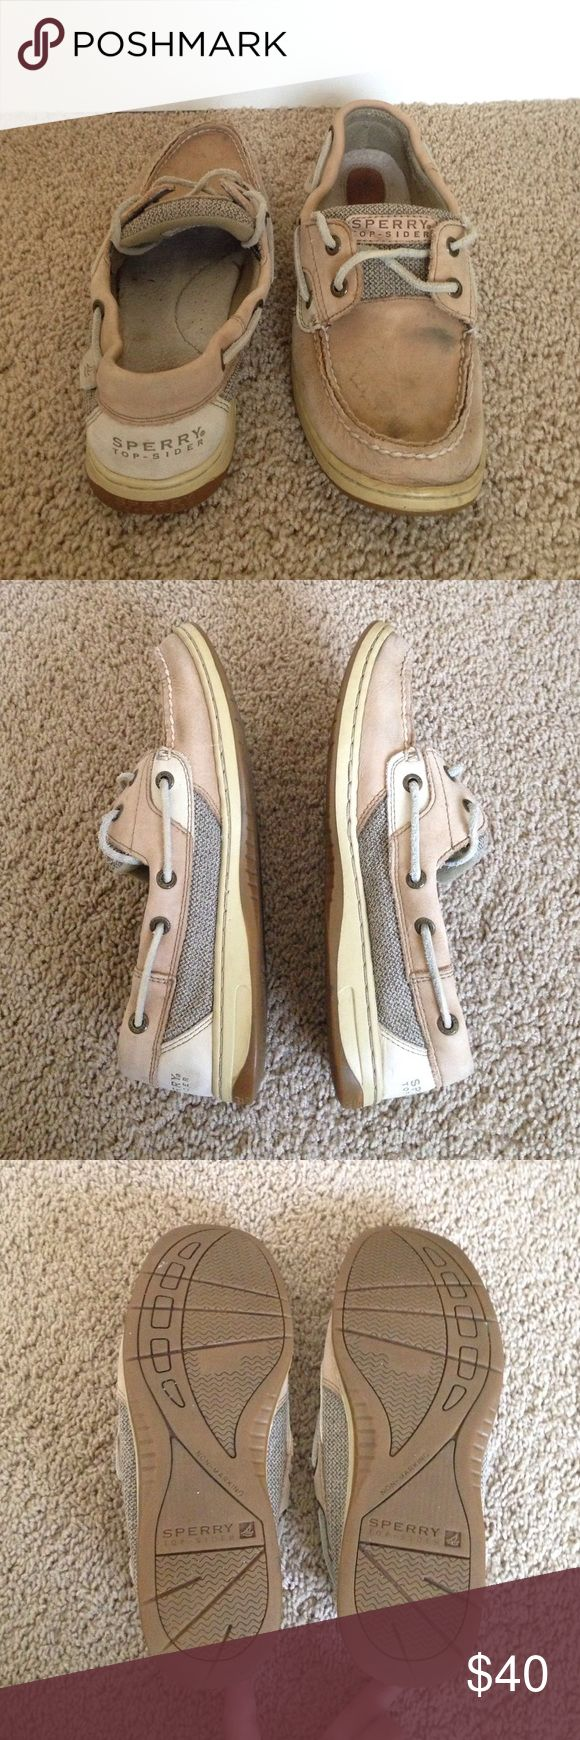 Classic Sperry's Boat Shoe Classic women's boat shoe purchased from the Sperry store. Very comfortable shoes, worn multiple times, still in overall good condition!  🔸Feel free to make an offer!🔸 Sperry Top-Sider Shoes Sneakers